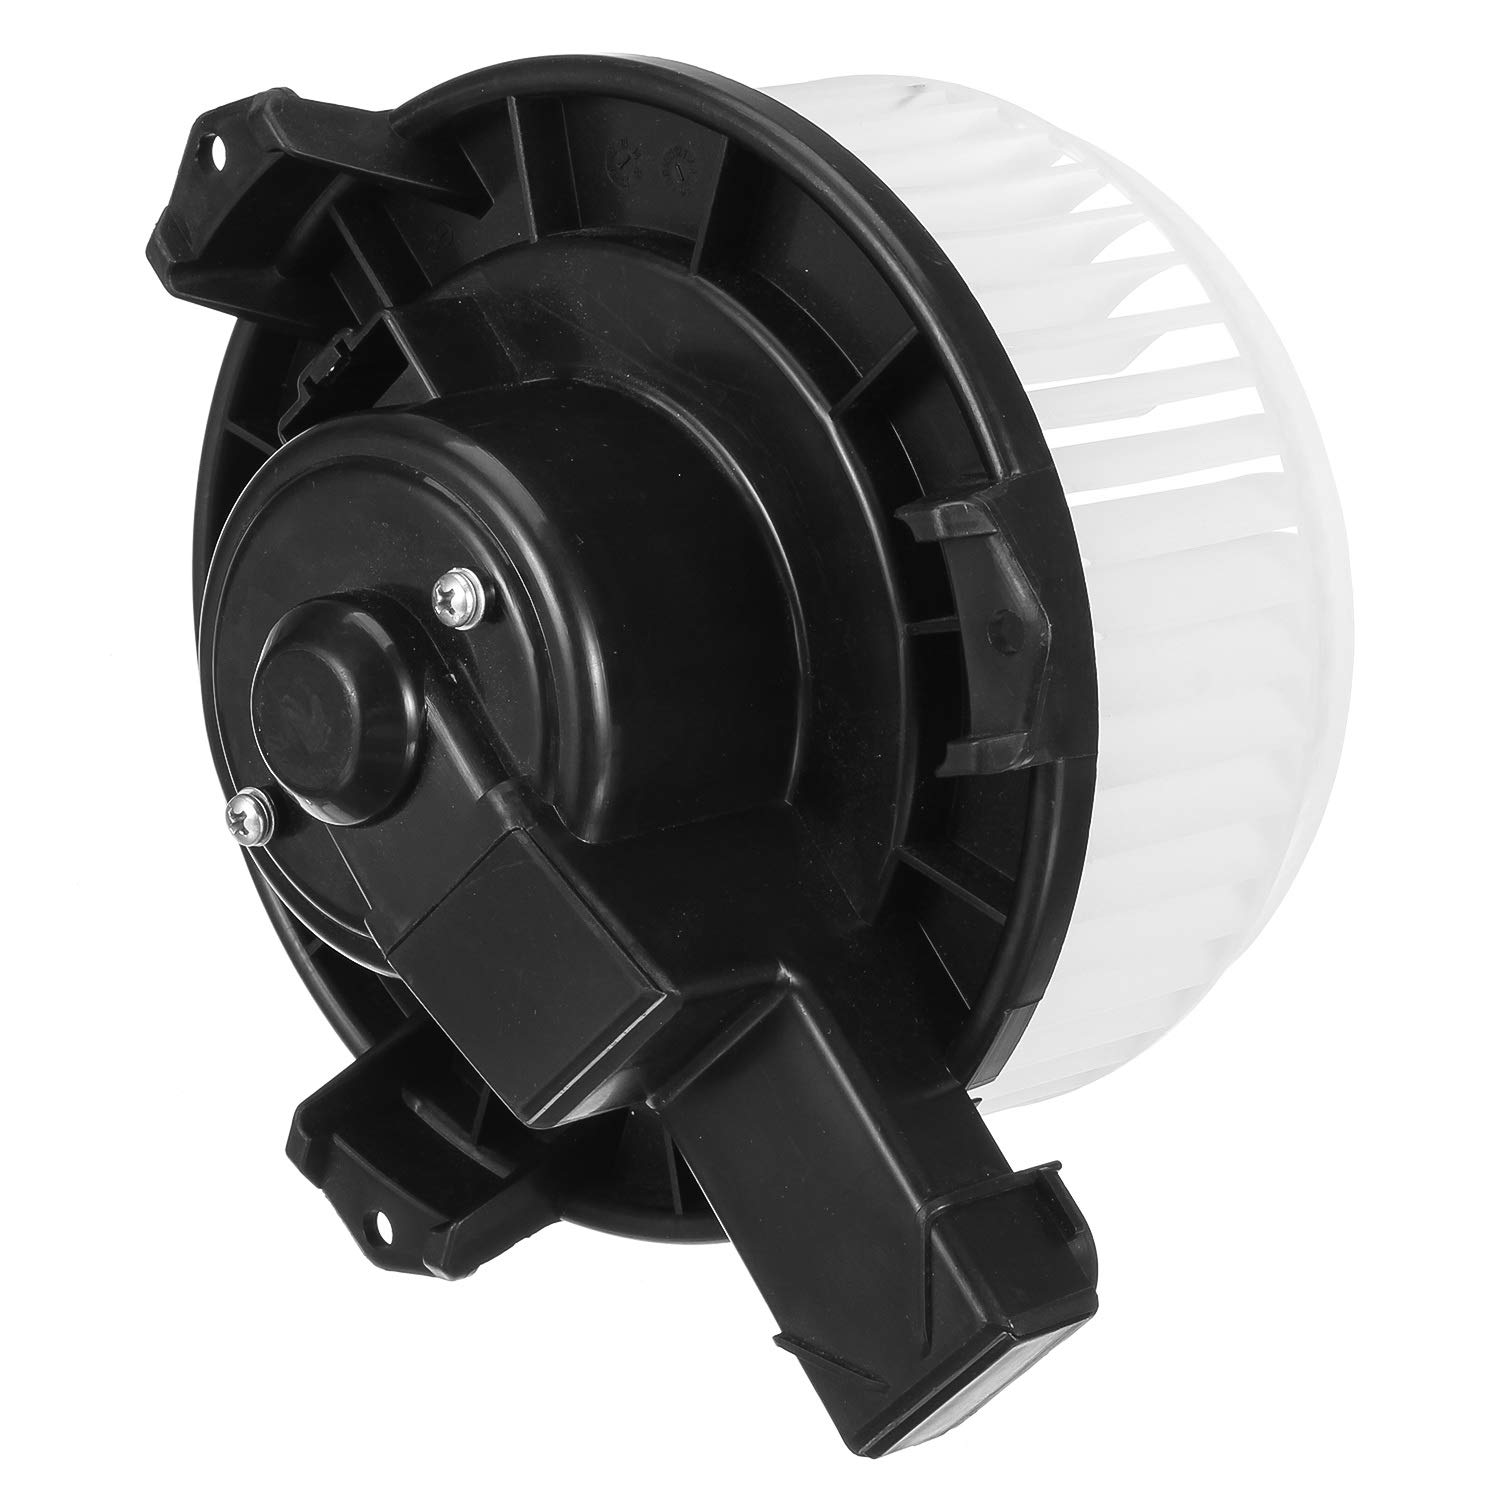 AUTEX HVAC Blower Motor Assembly 700062 8710335060 Compatible with Lexus Gx470 2003-2007 Replacement for Toyota 4runner 2003-2009 Blower Motor